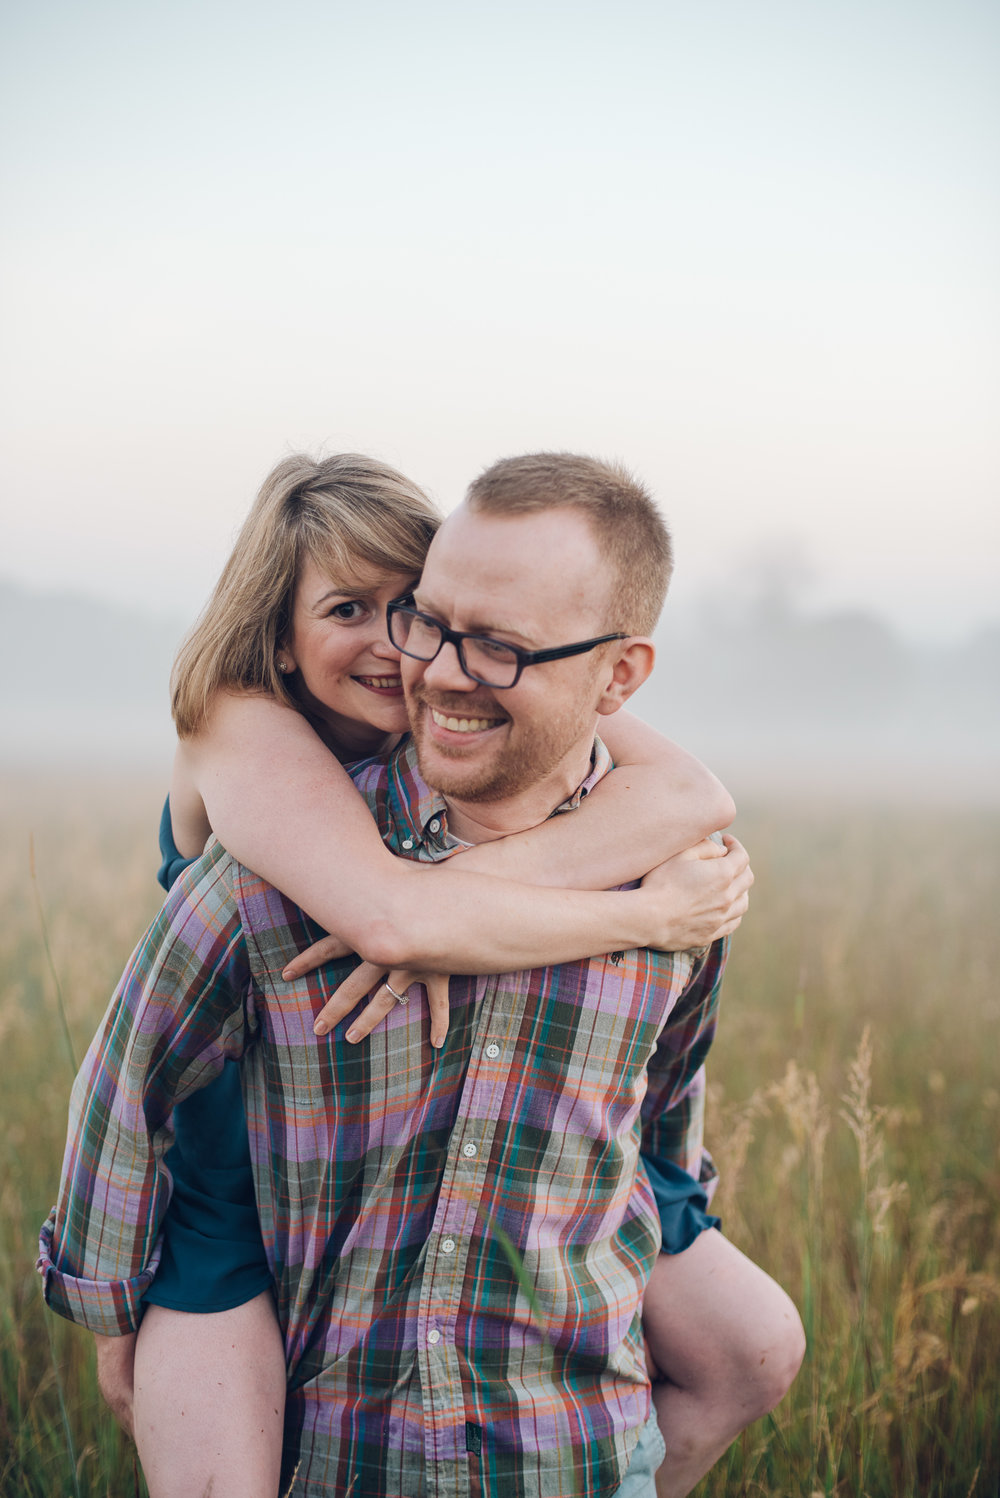 Manassas Battlefield engagement photography